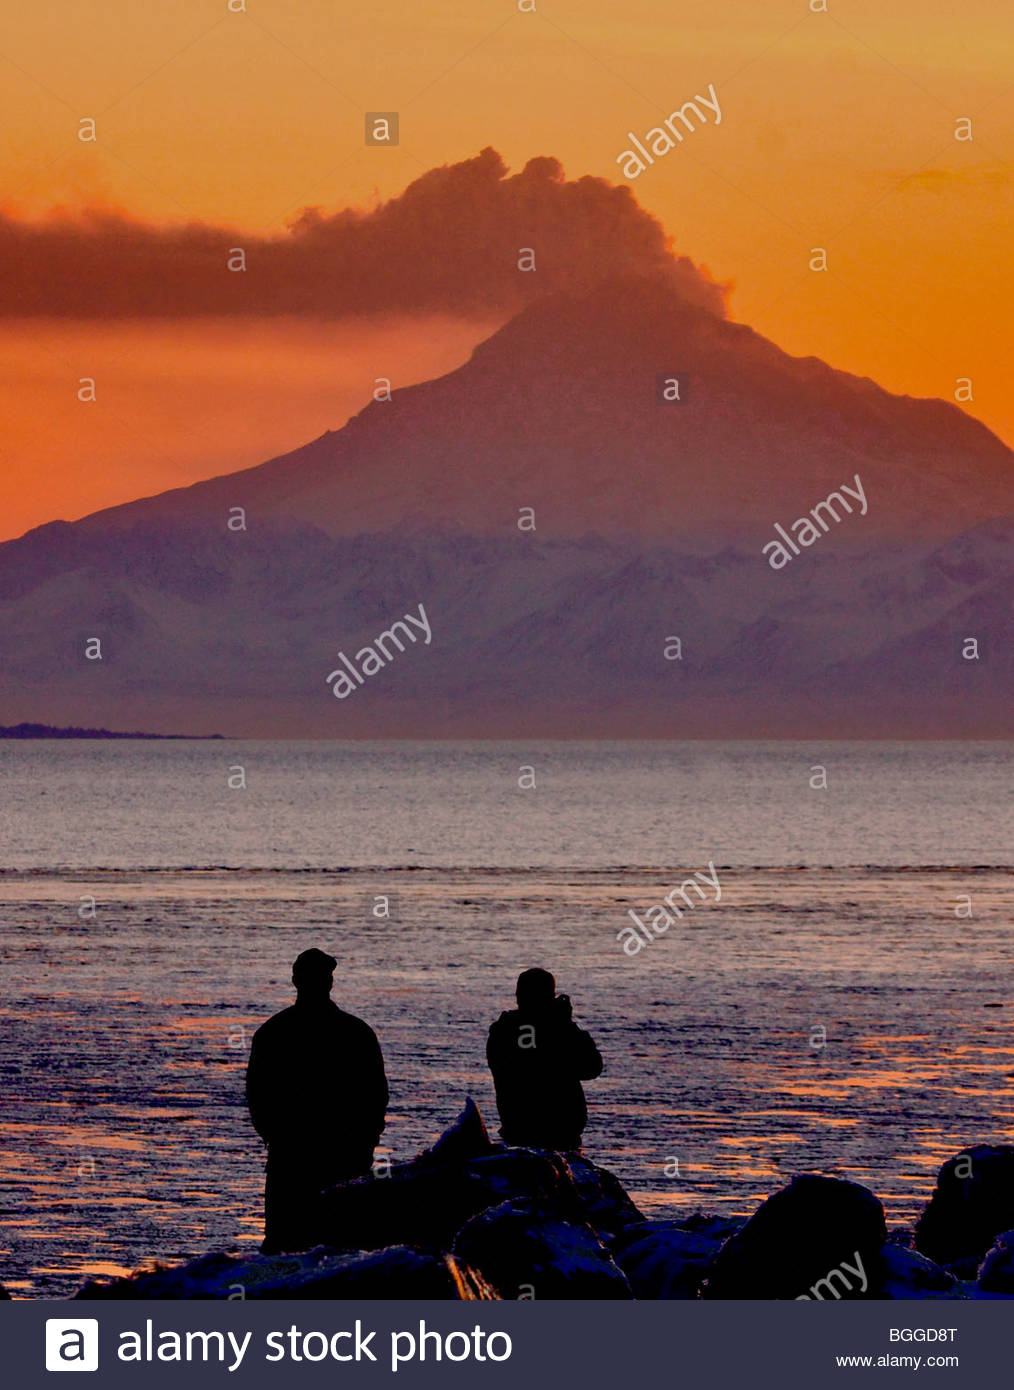 Alaska. Mt Redoubt volcano emitting steam with some ash, as viewed at sunset from Kenai visitors. Stock Photo